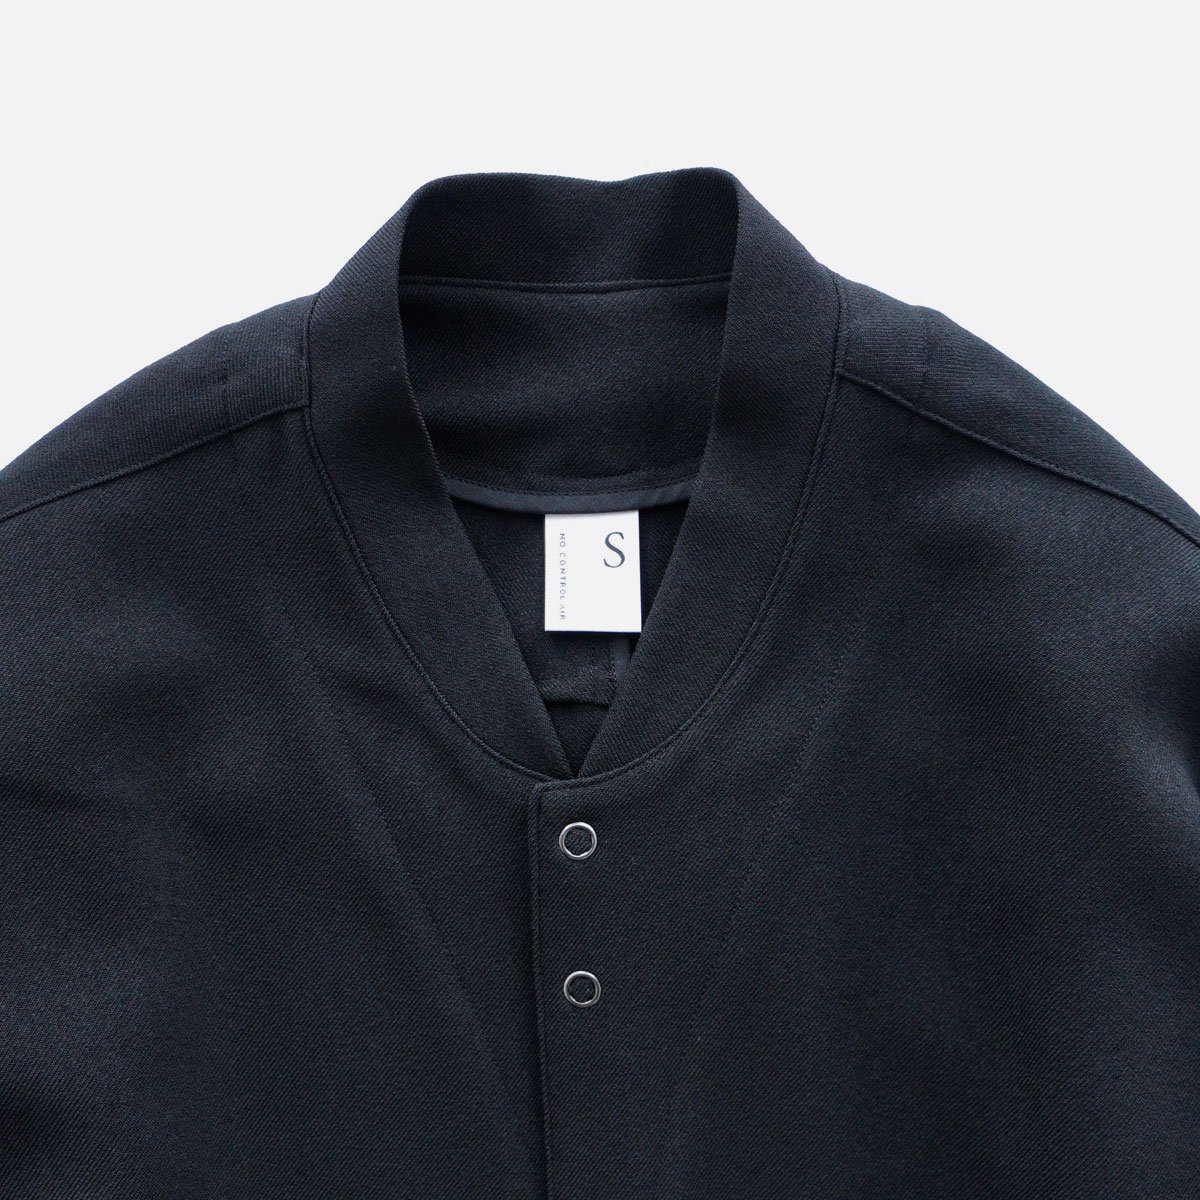 NO CONTROL AIR MIX MELANGE POLYESTER TWILL BLOUSON  (black)4